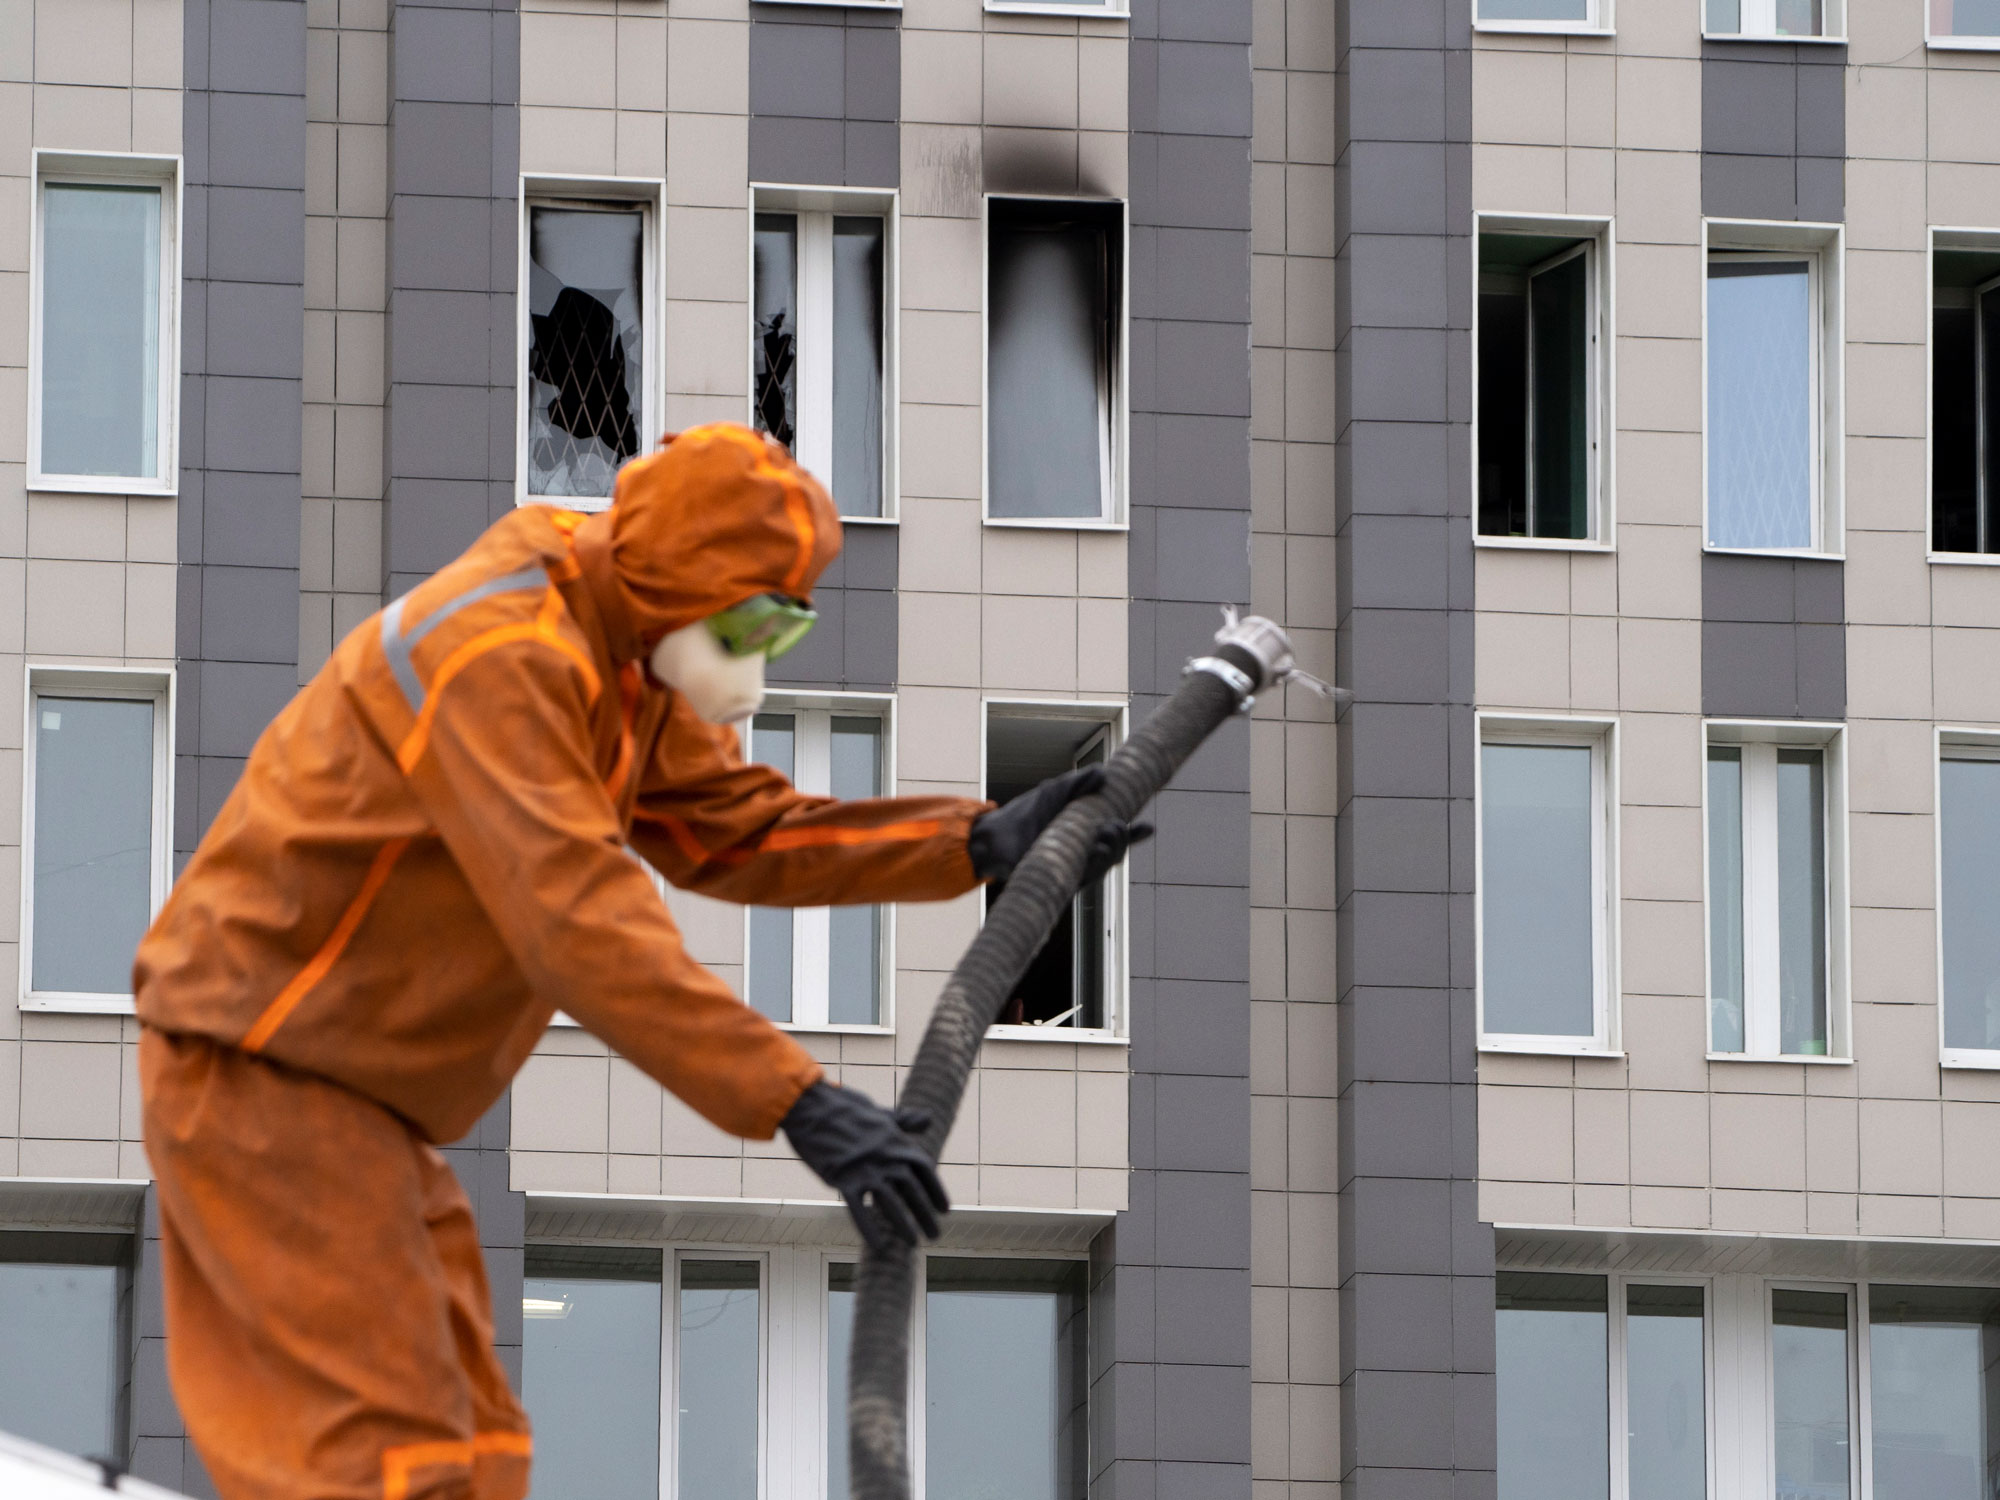 A first responder works at the scene of a fire at St. George Hospital in St. Petersburg, Russia, on Tuesday.